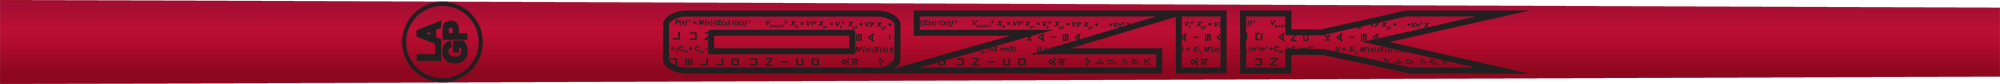 Ozik White Tie: Candy Apple Red Black Satin - Wood 60 R